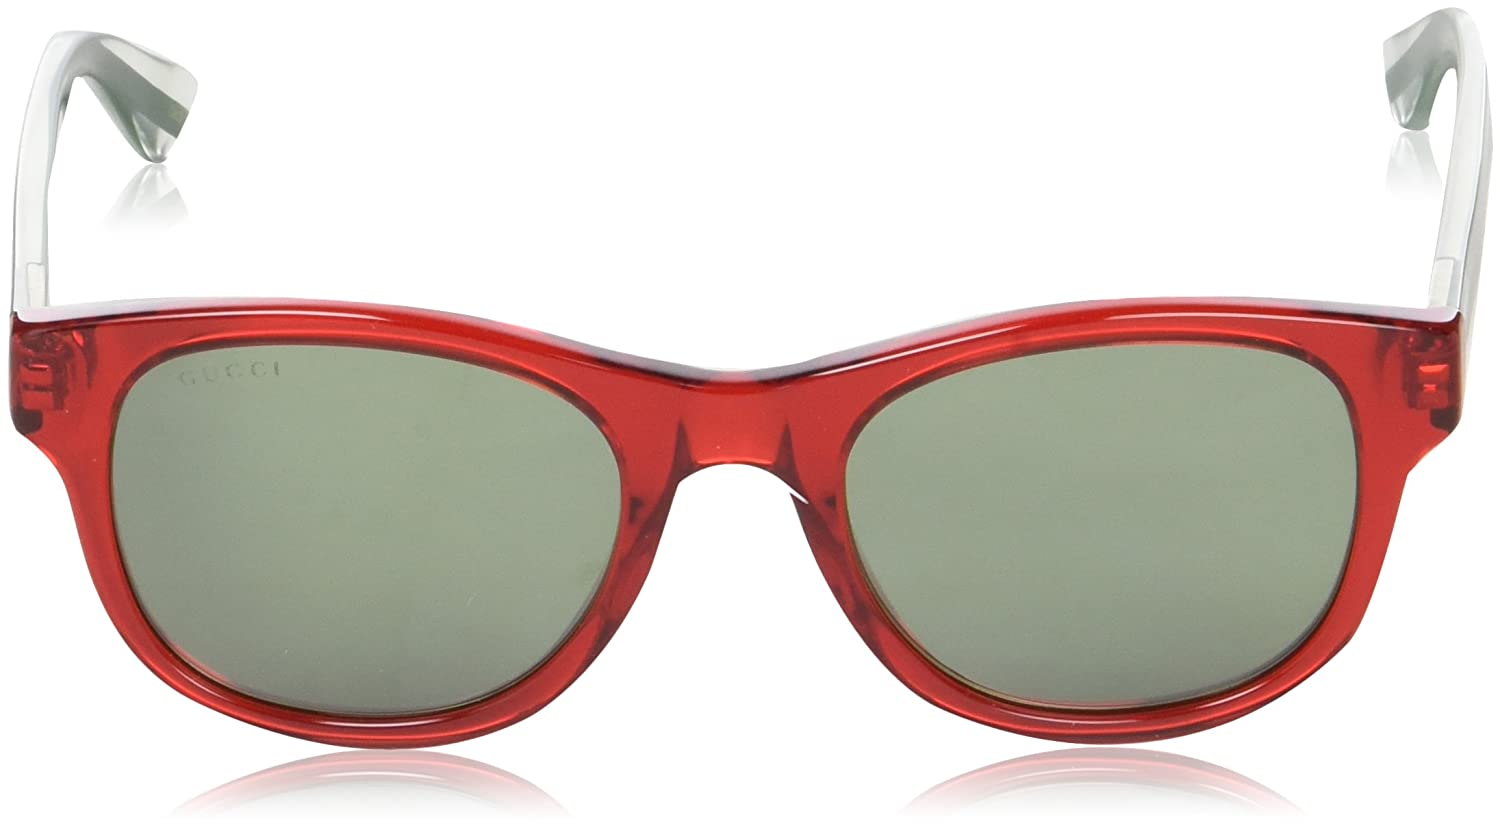 Mens GG0003S Sunglasses, Red-Crystal-Silver, 52 Gucci